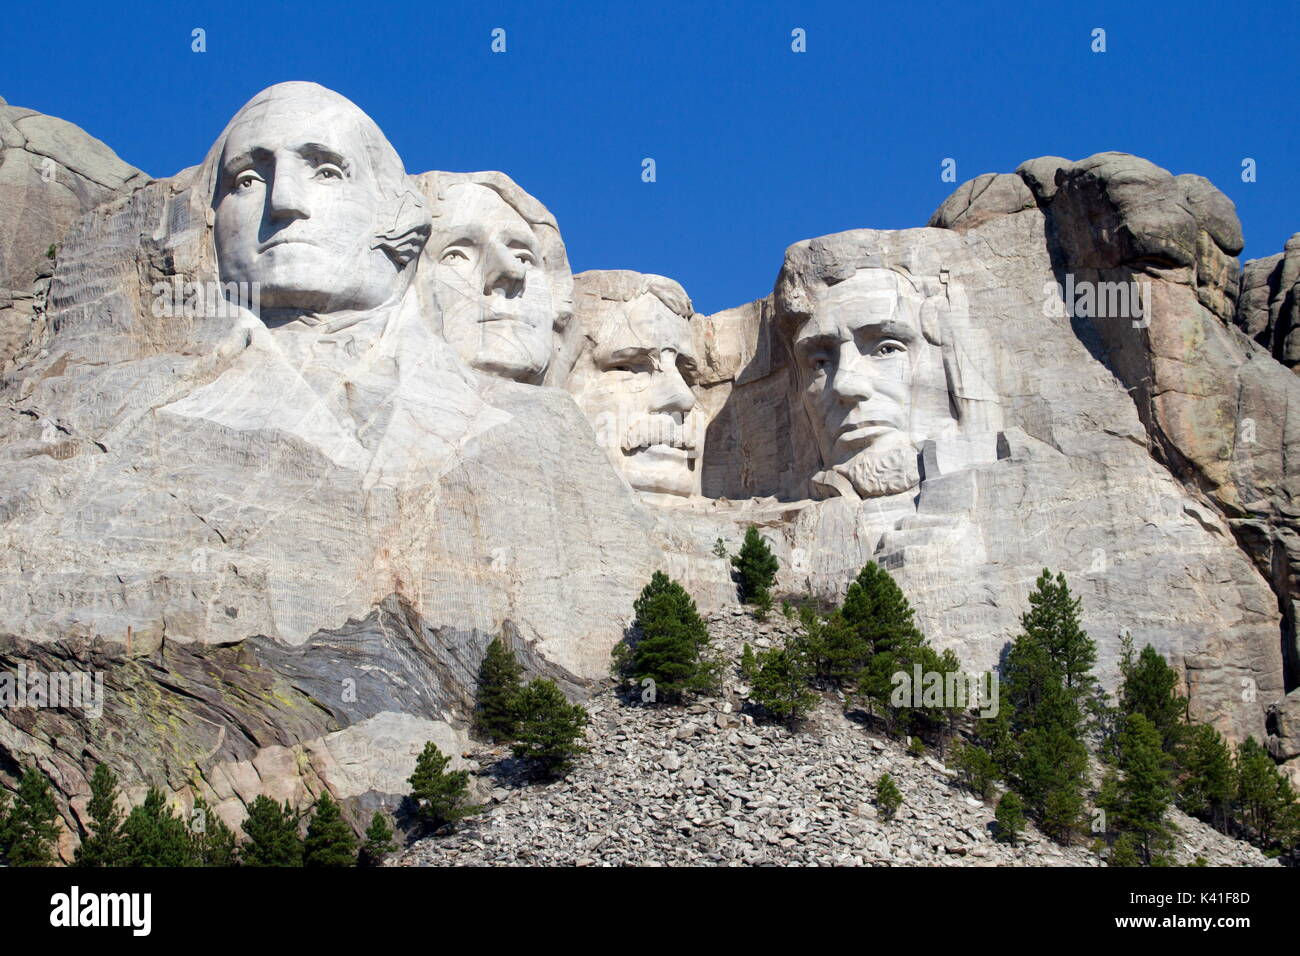 Black Hills in Keystone, South Dakota, United States - August 22, 2017: Mount Rushmore National Memorial is a sculpture carved into the granite face o - Stock Image